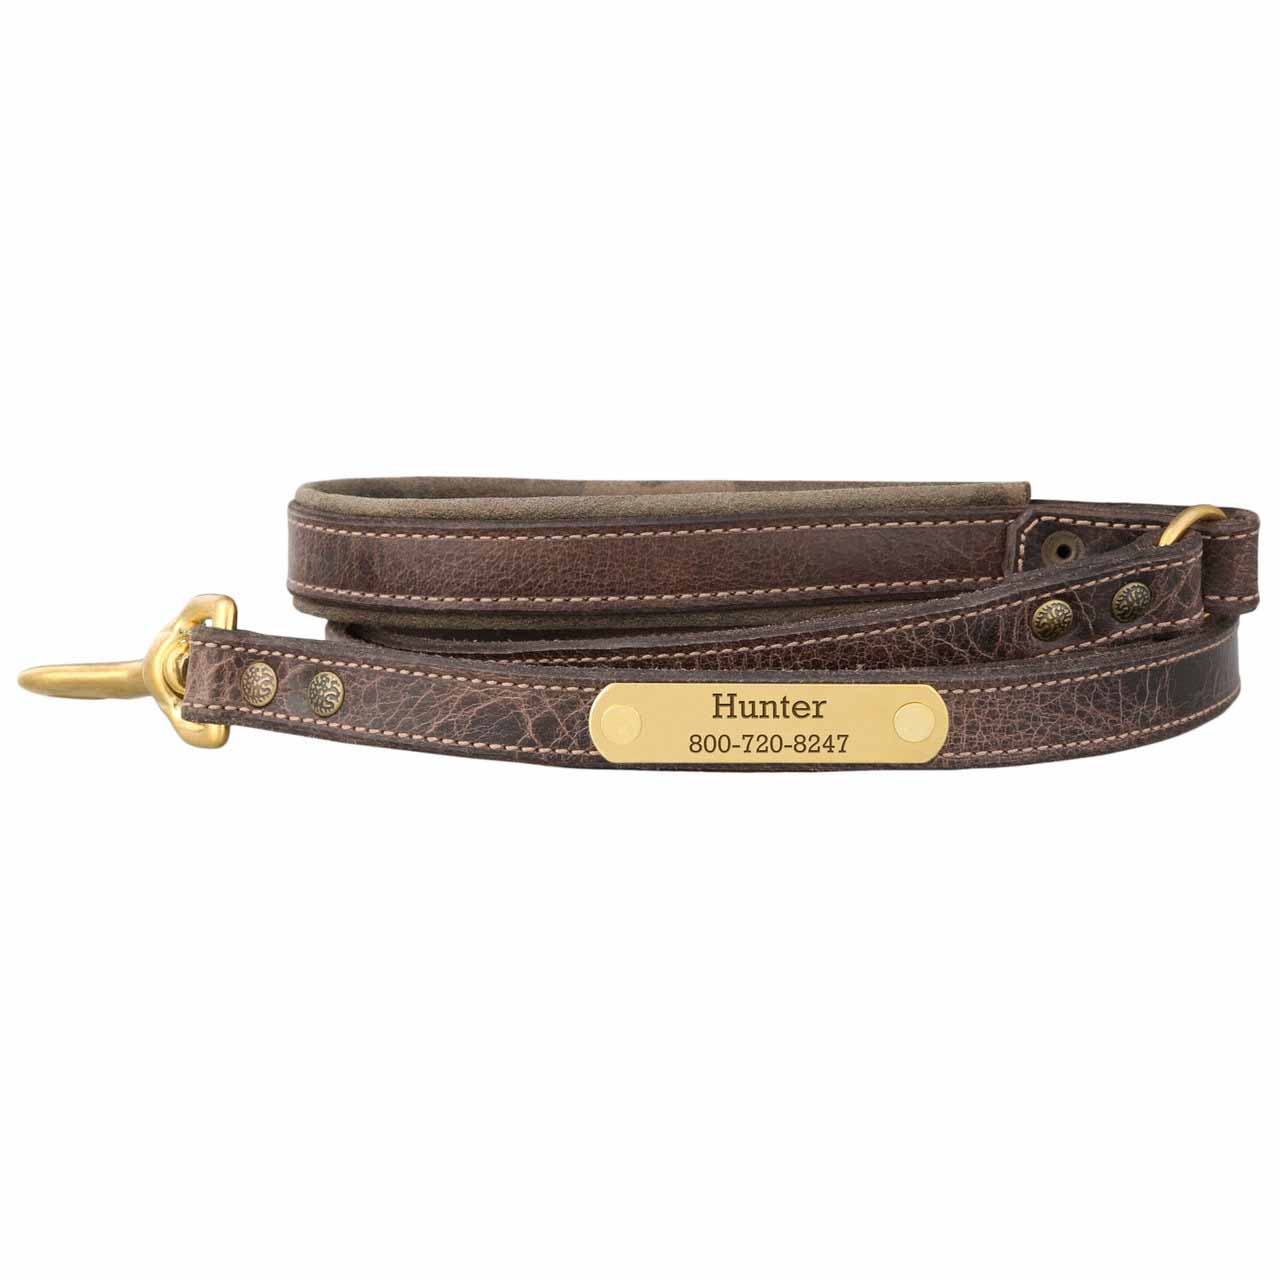 worn brown custom dog leash